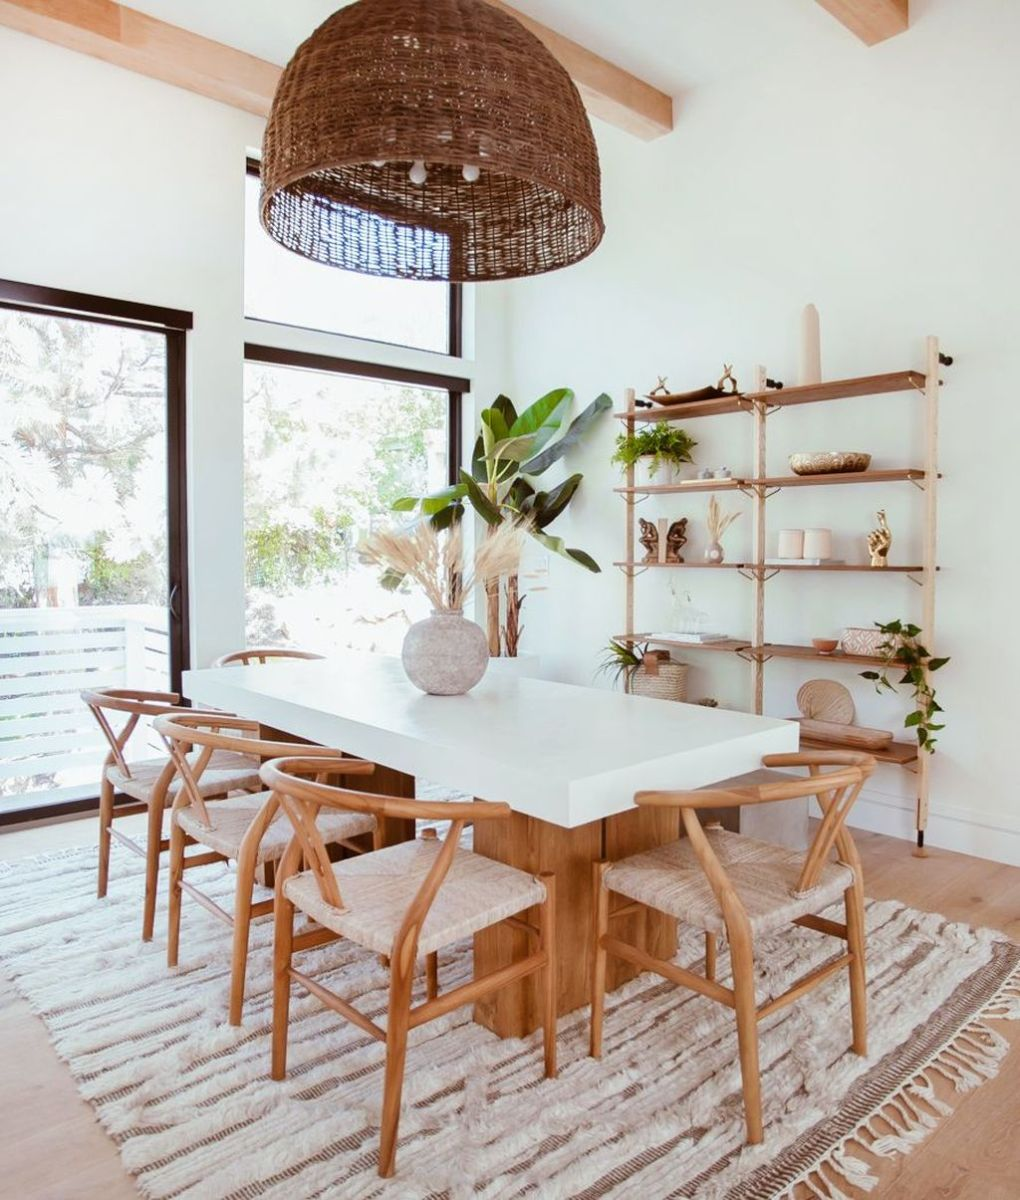 Admirable Dining Room Design Ideas You Will Love 07 1